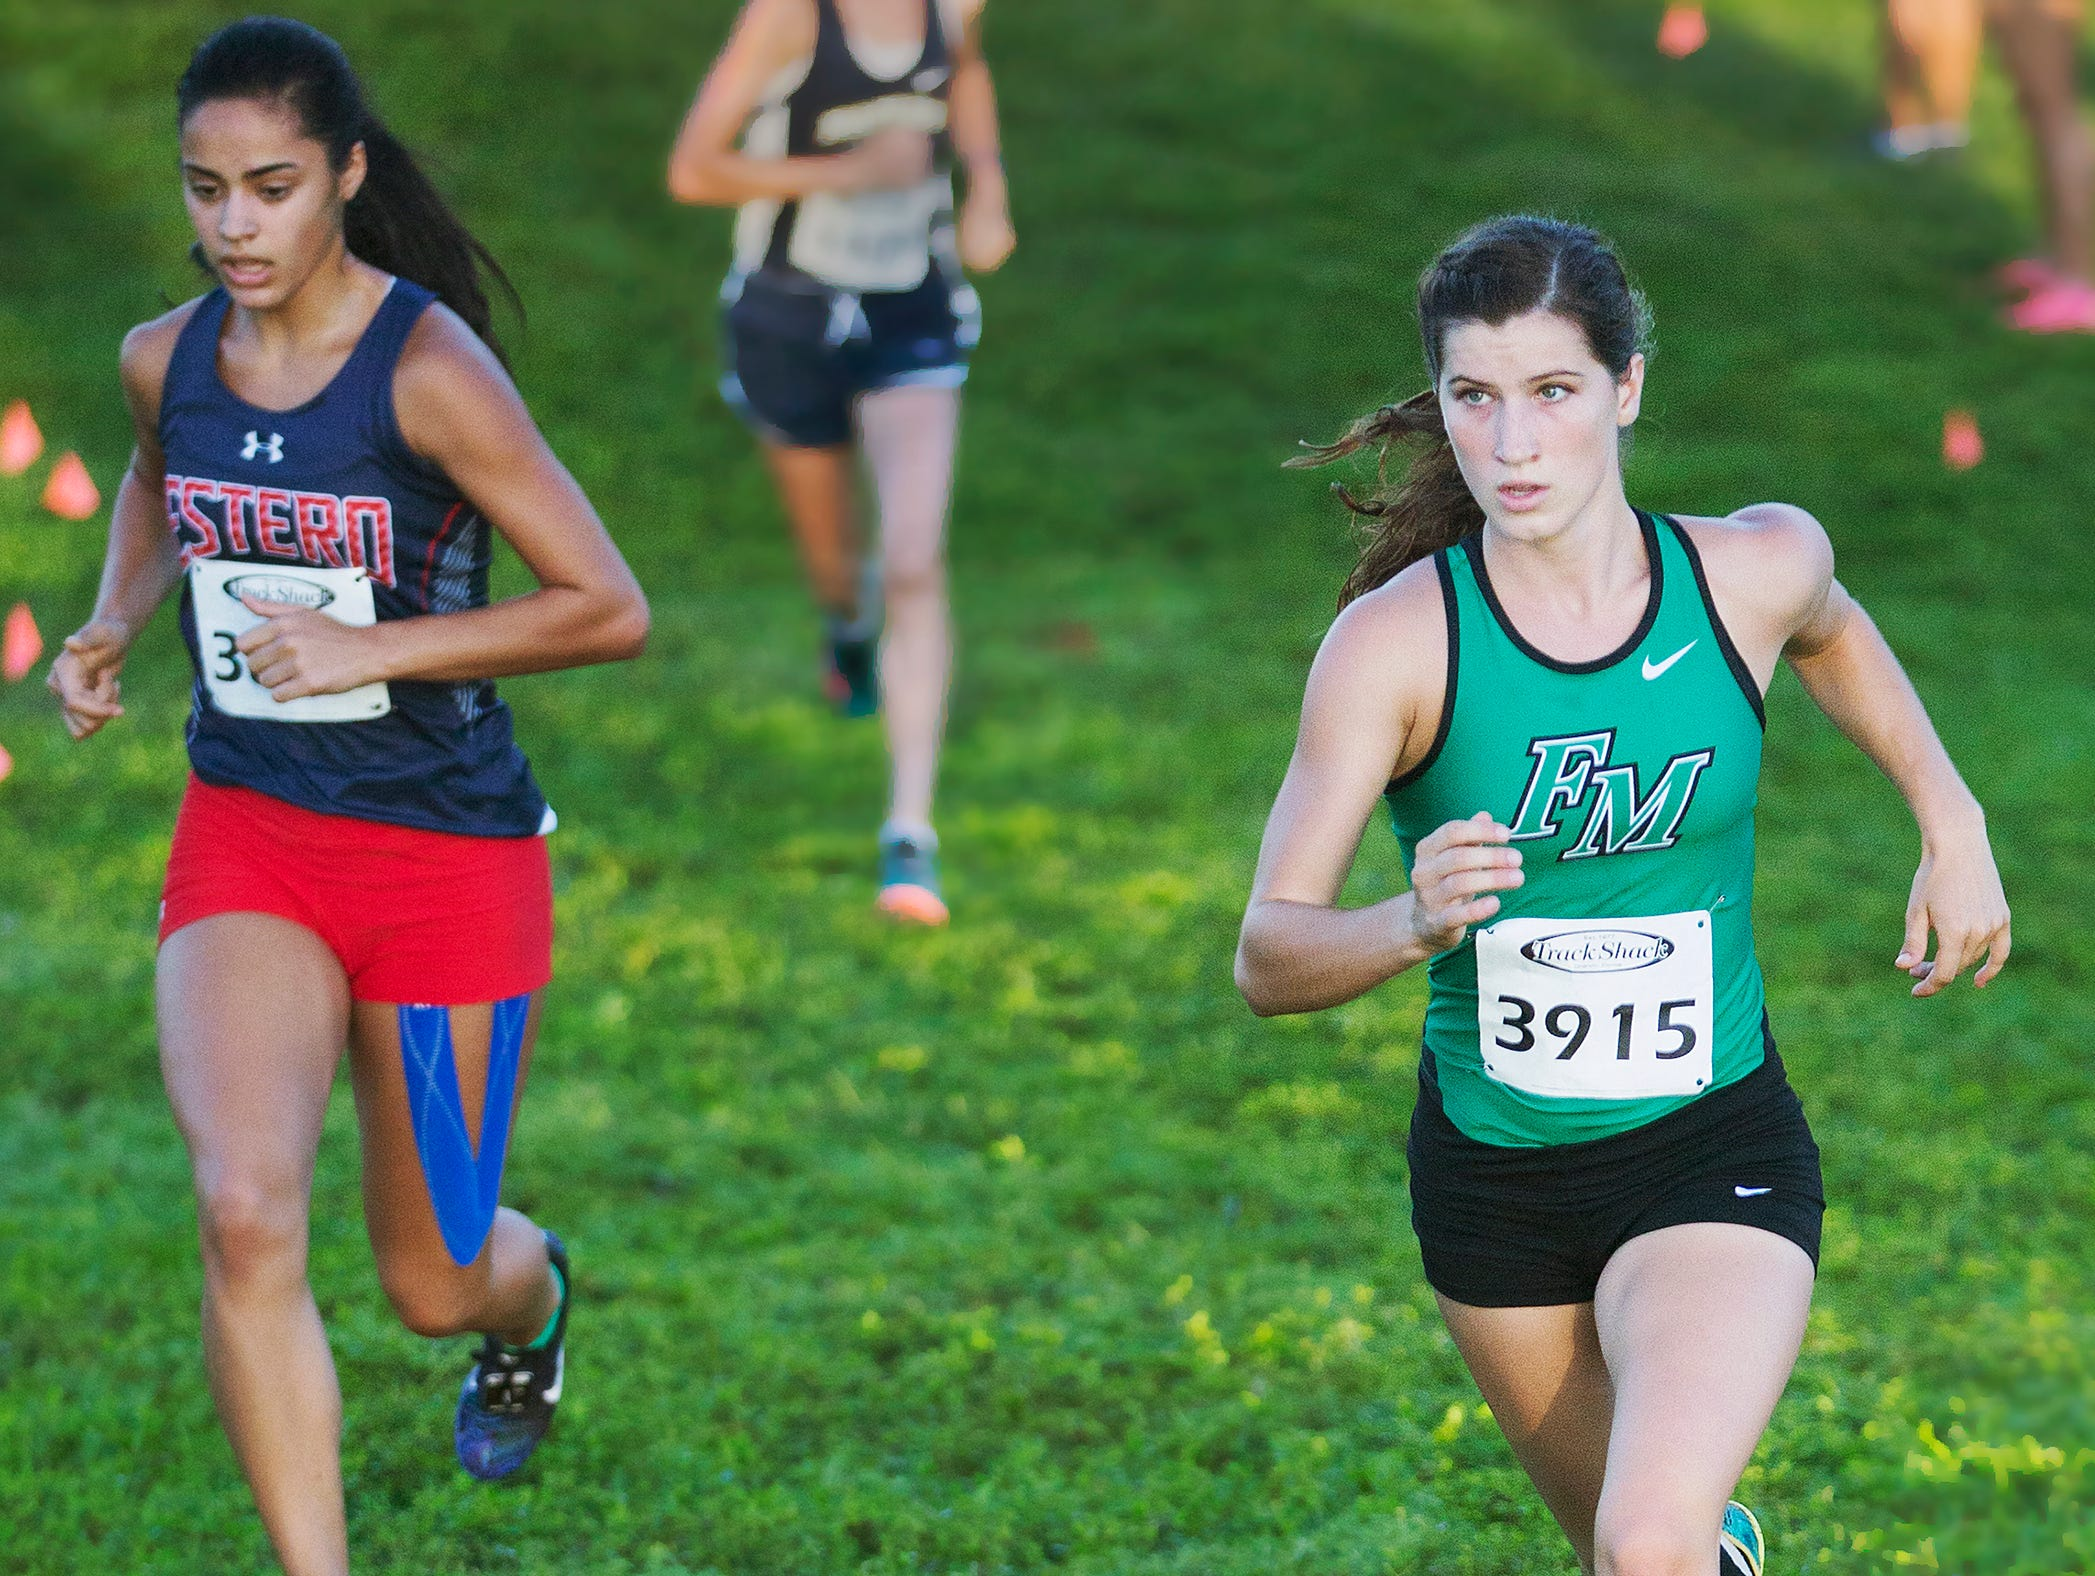 Fort Myers High School's Kristlin Gear, right, competes in the Hoptar Invitational at Veterans Park in Lehigh Acres on Saturday. Gear won the race.